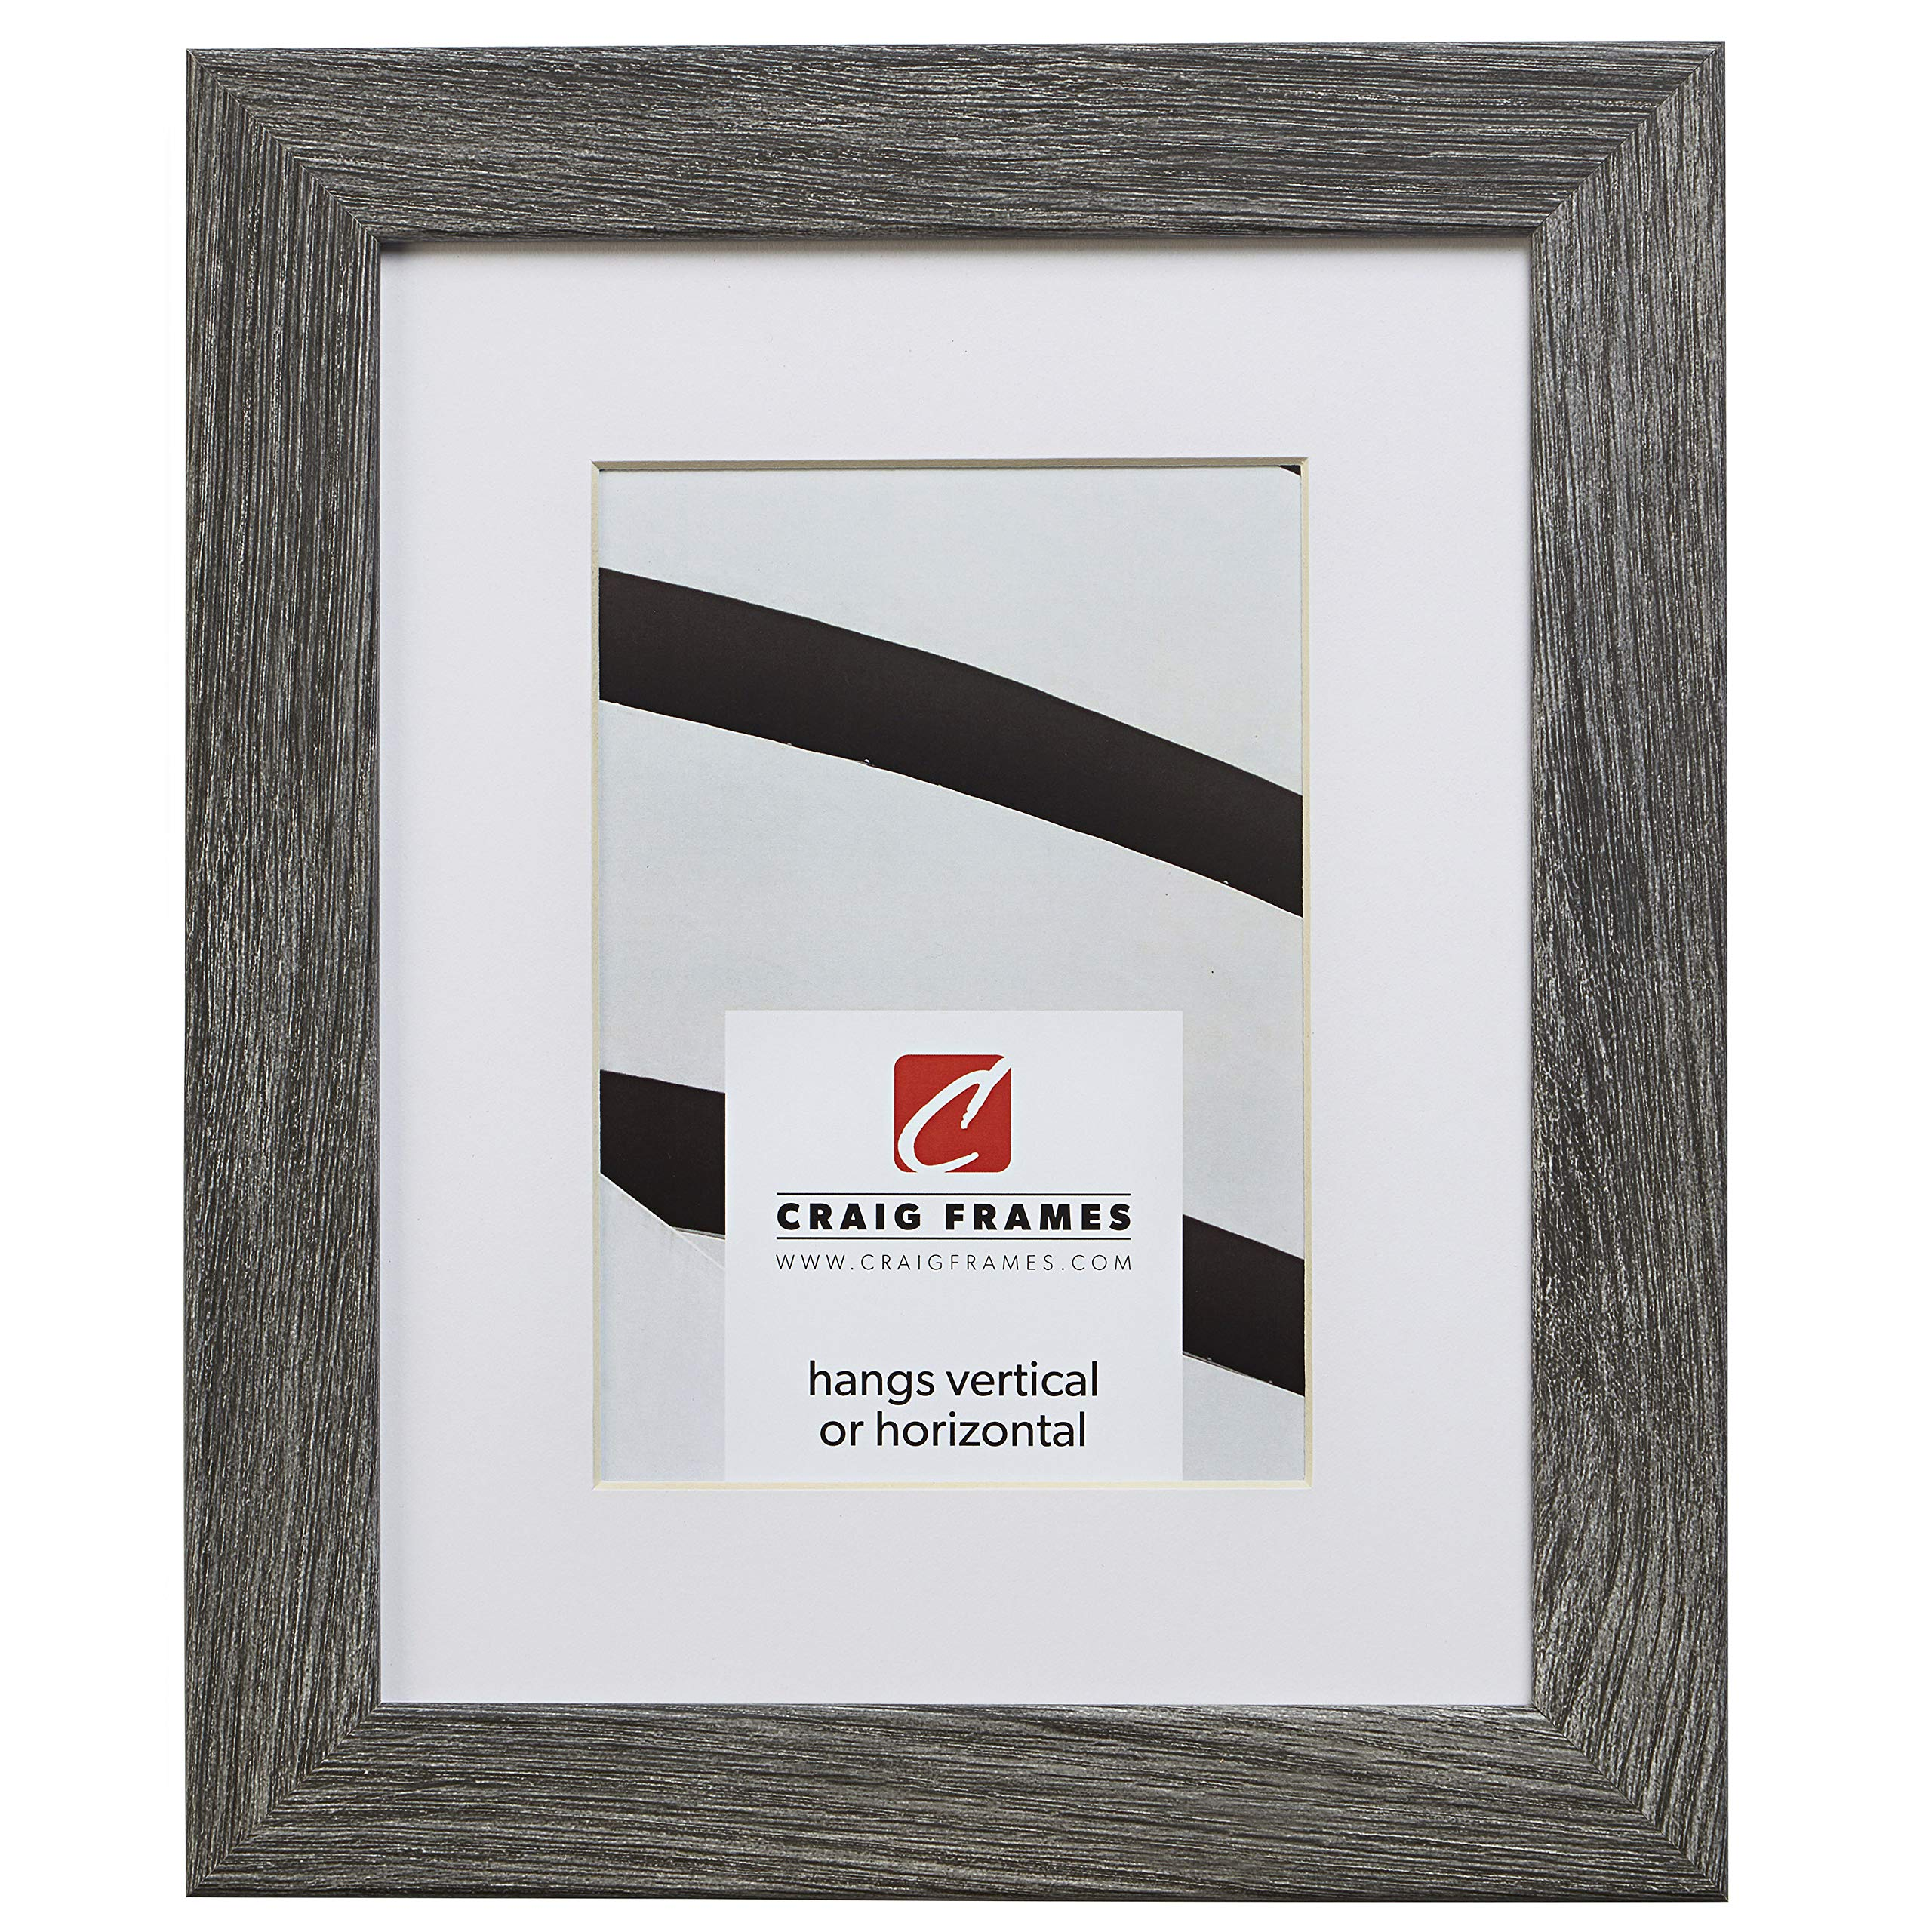 Craig Frames 26030 24 x 36 Inch Gray Barnwood Picture Frame Matted to Display a 20 x 30 Inch Photo